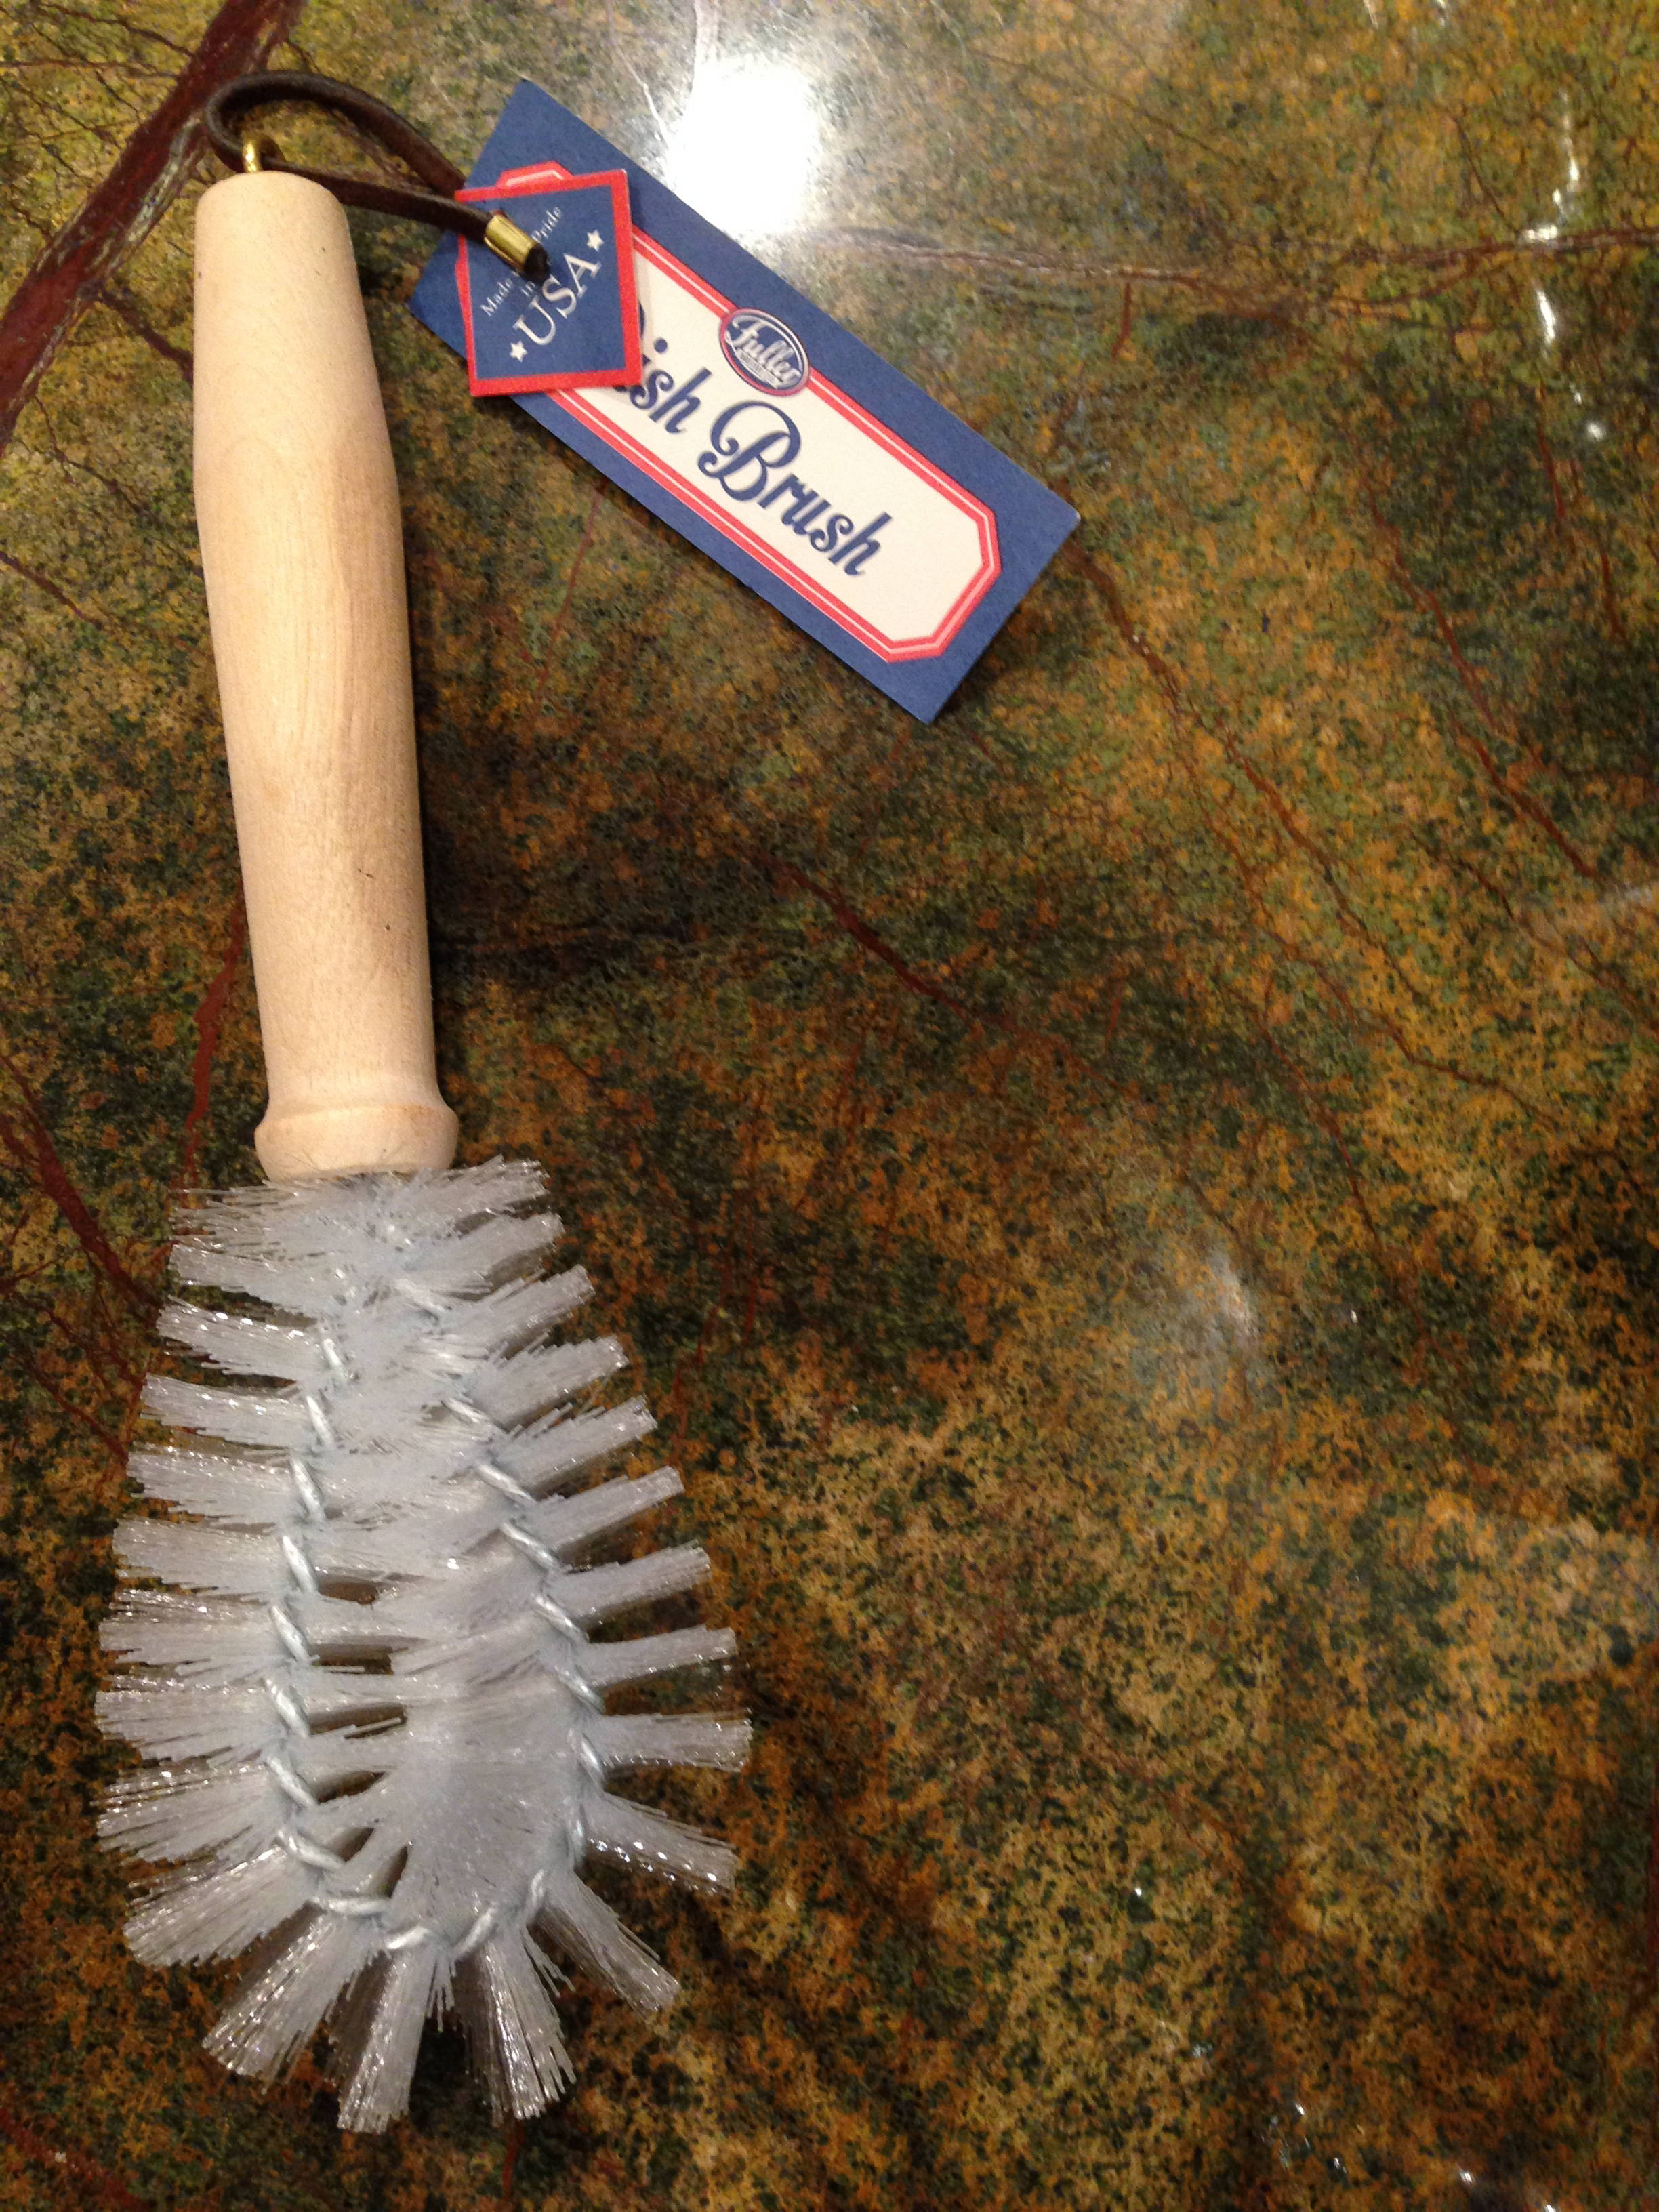 Purchasing this Made in USA dish brush made a difference to me.